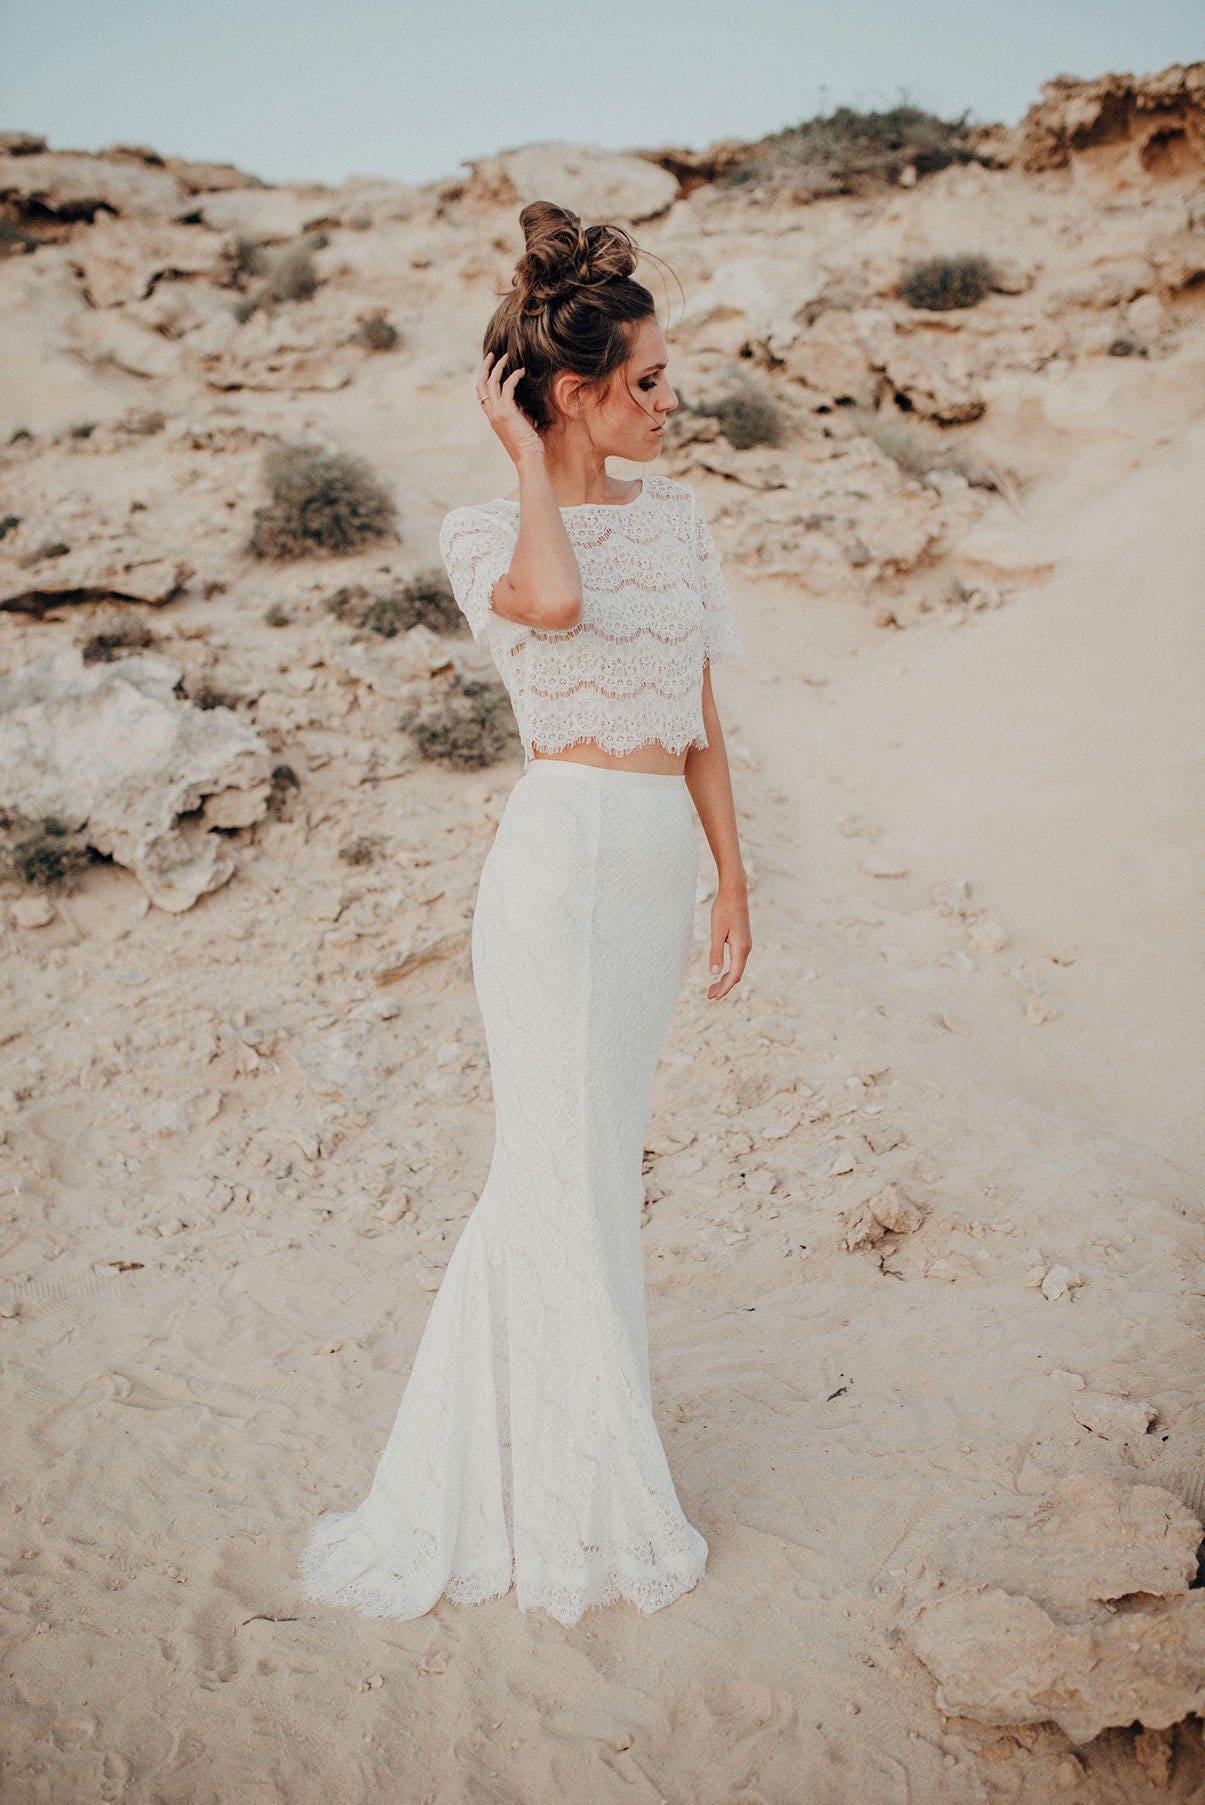 Bridal separates wedding separates two piece wedding dress zoom ombrellifo Gallery